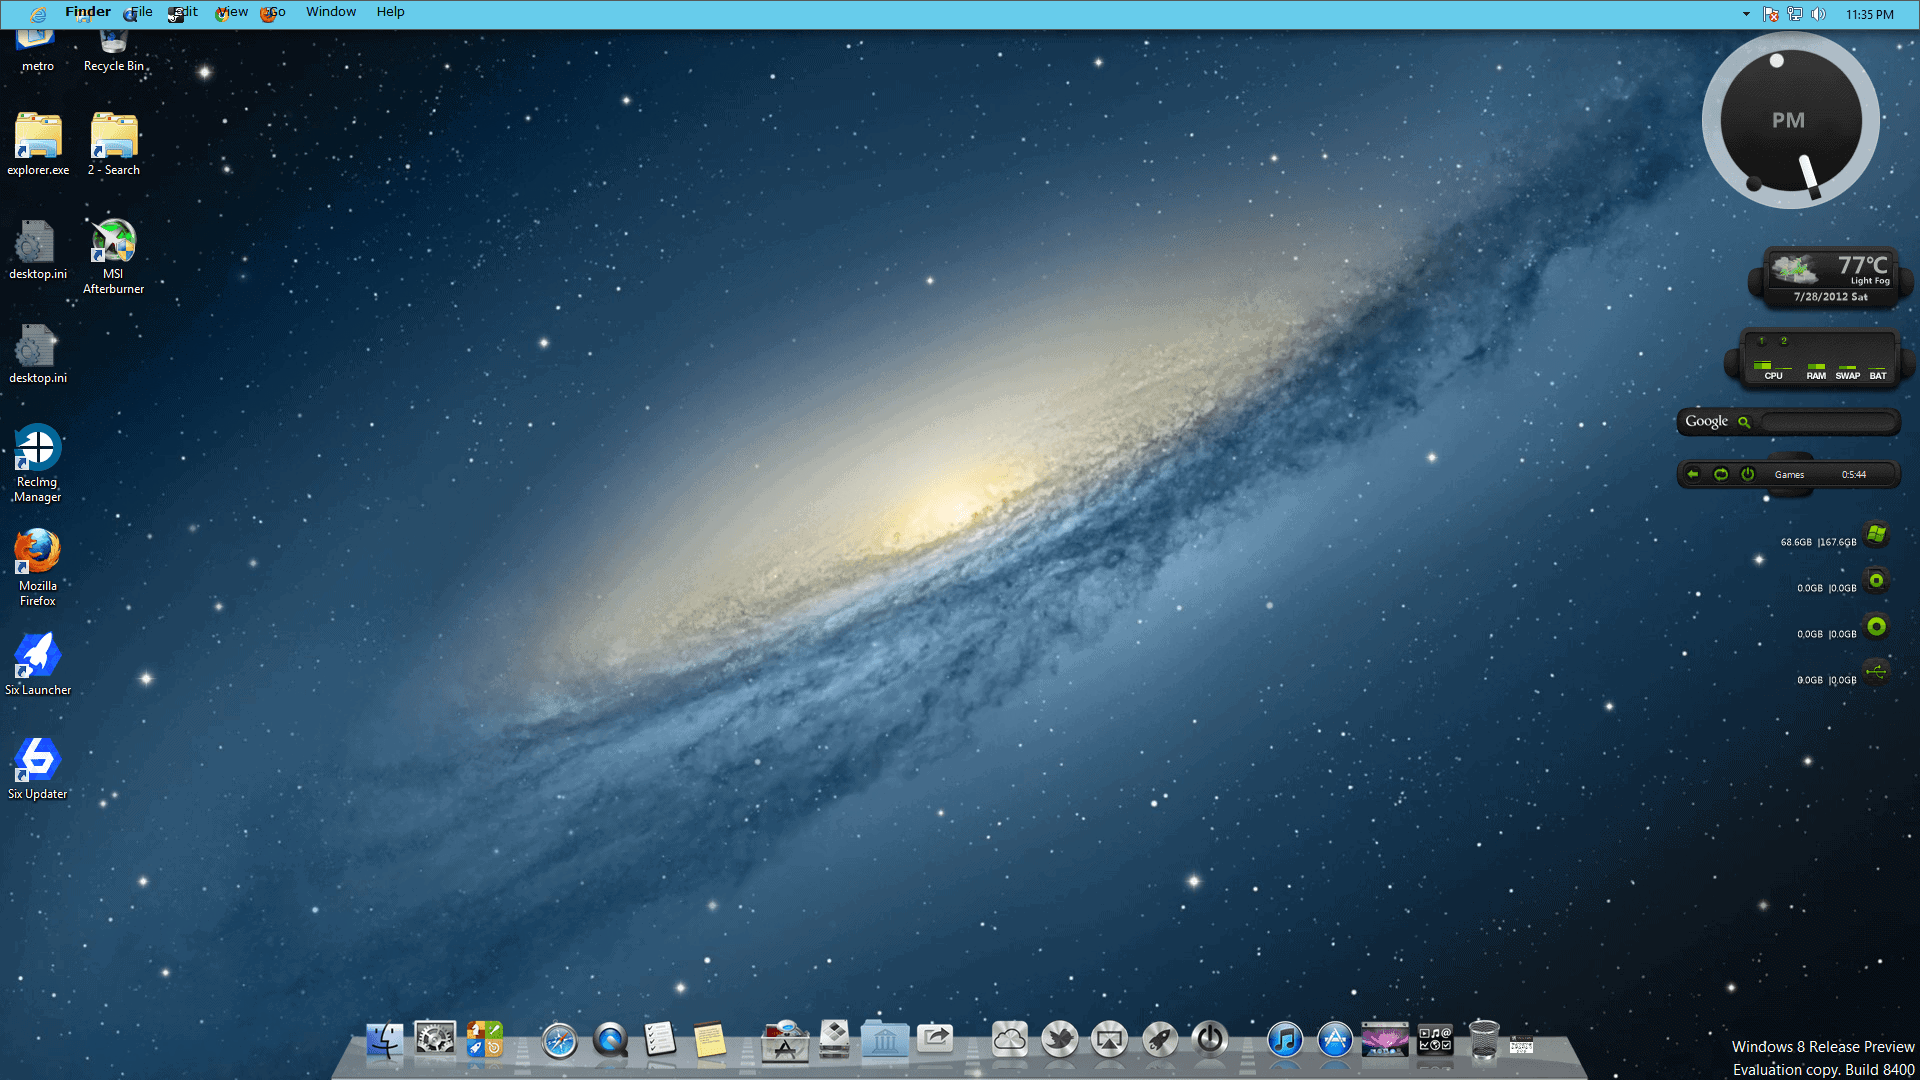 Transform windows 8 into mac os x ghacks tech news for Innenarchitektur mac os x